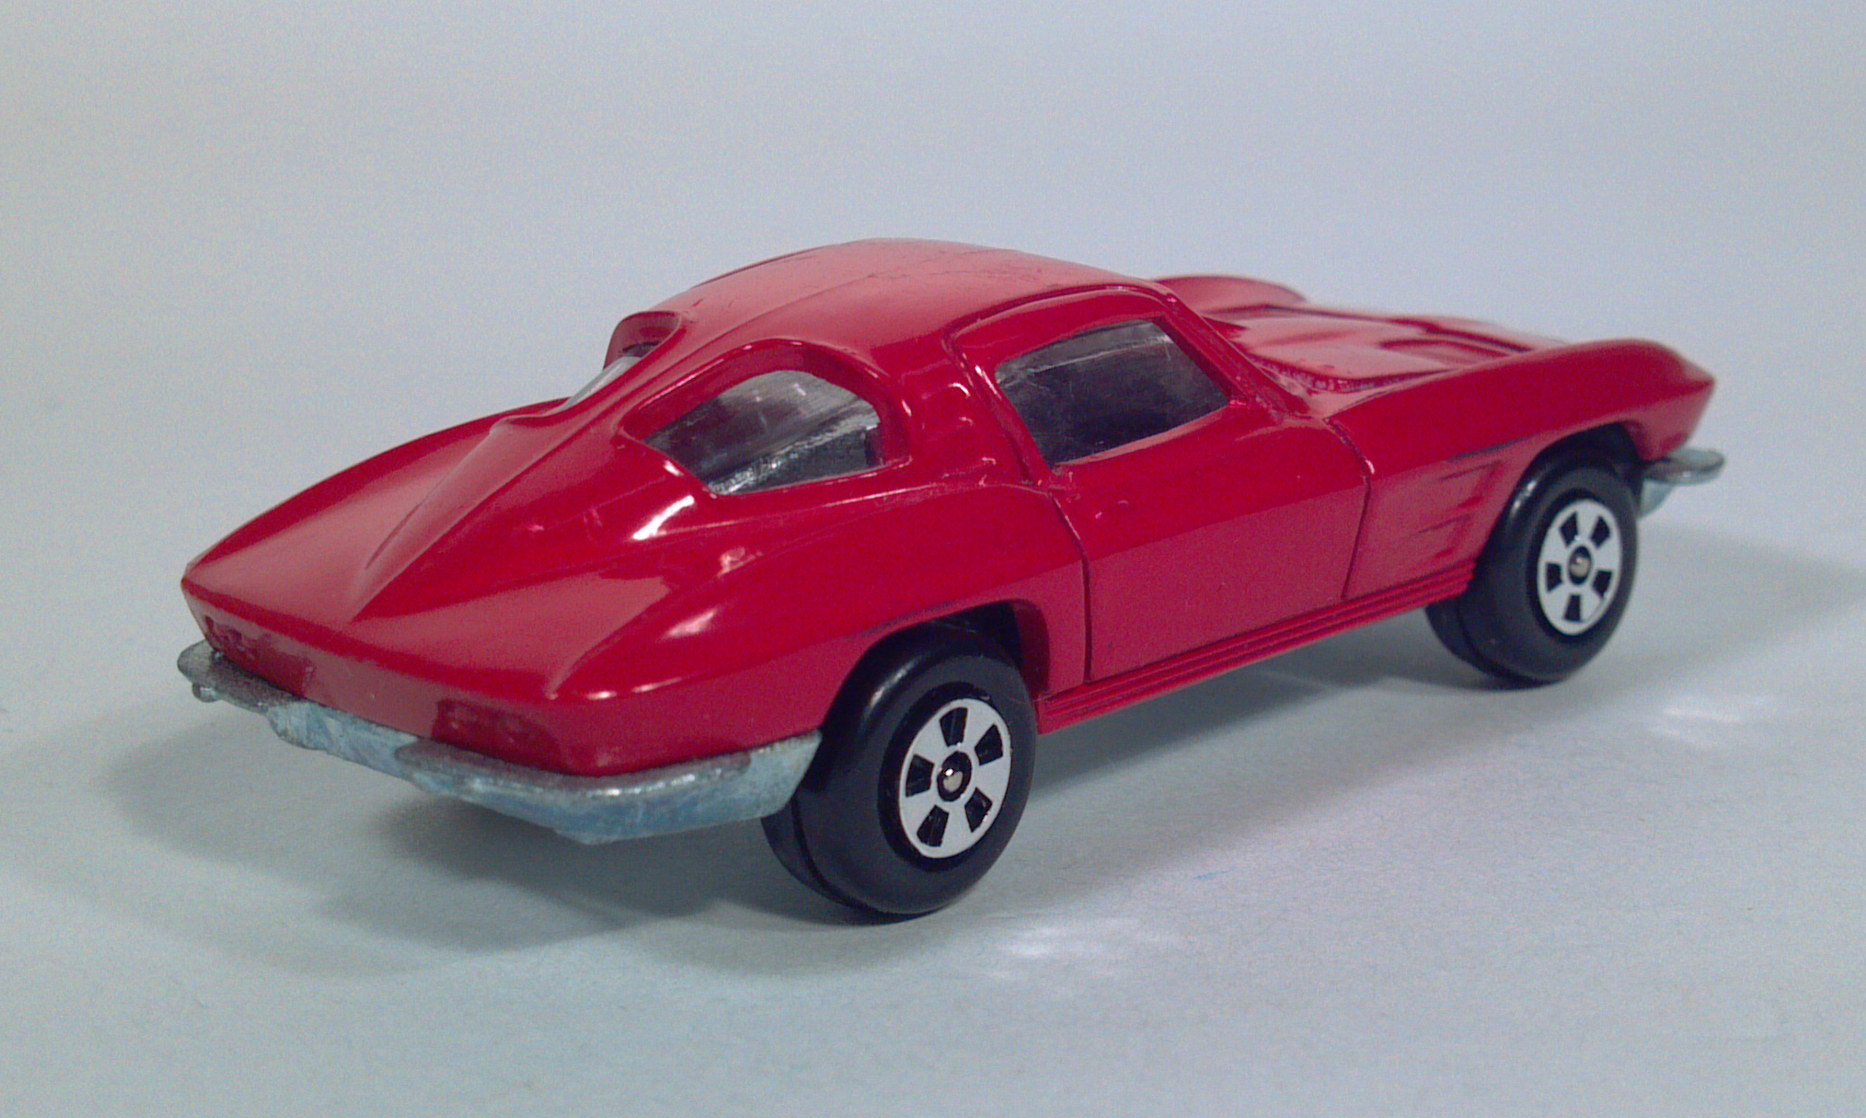 Ertl Scale 118 American Muscle Diecast Cars .html   Autos Post